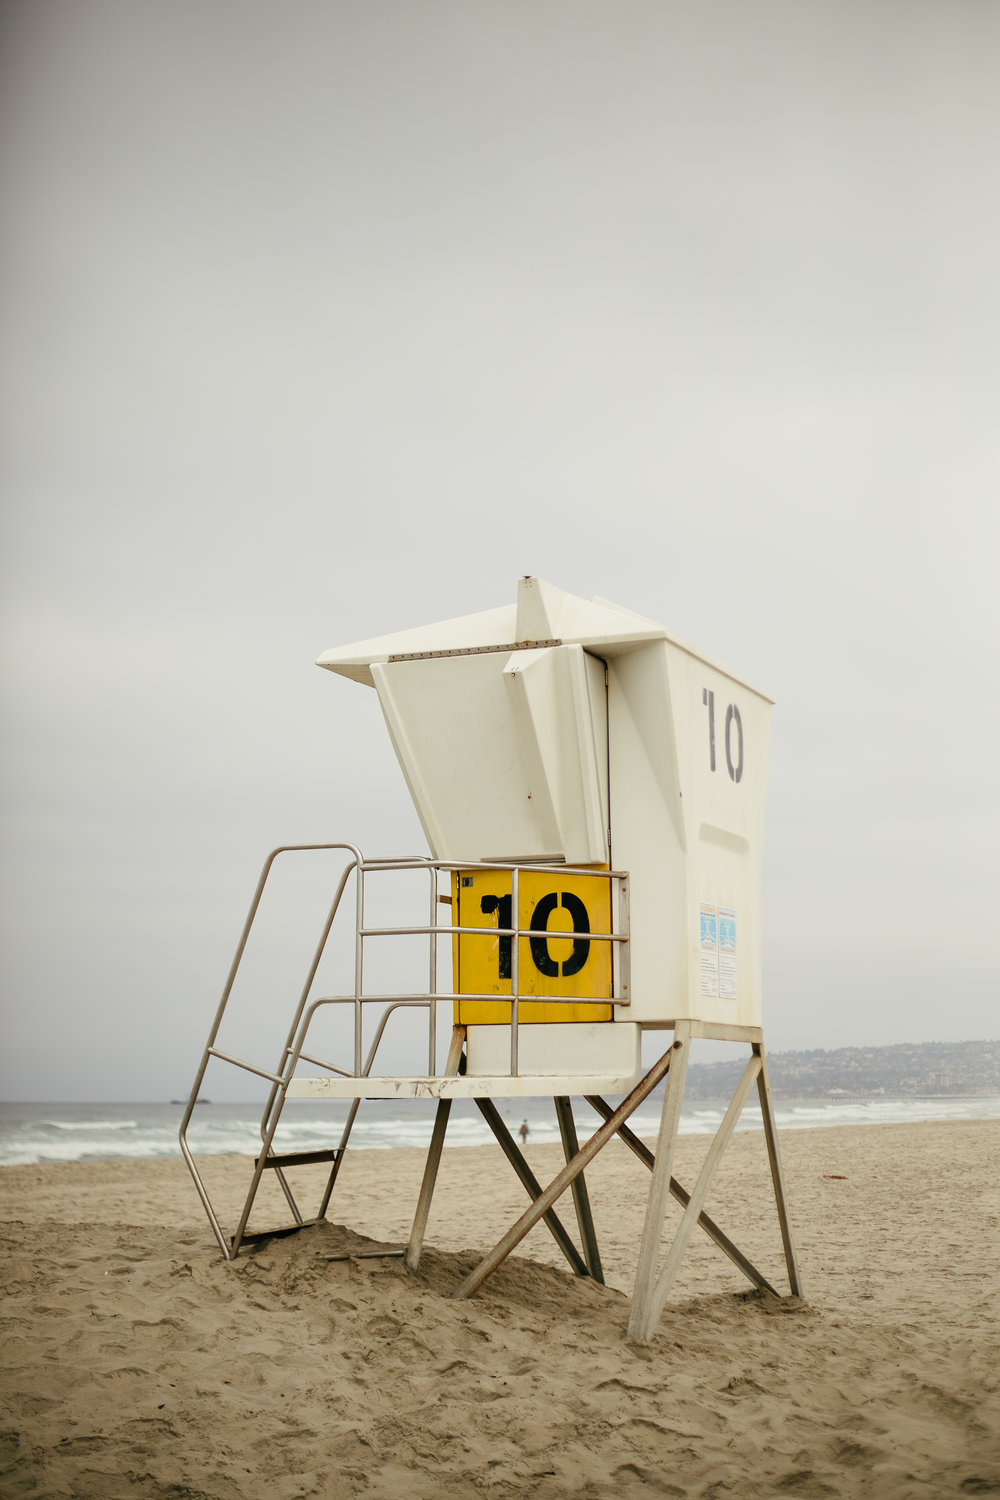 1. Yellow 10 Lifeguard Stand.jpg